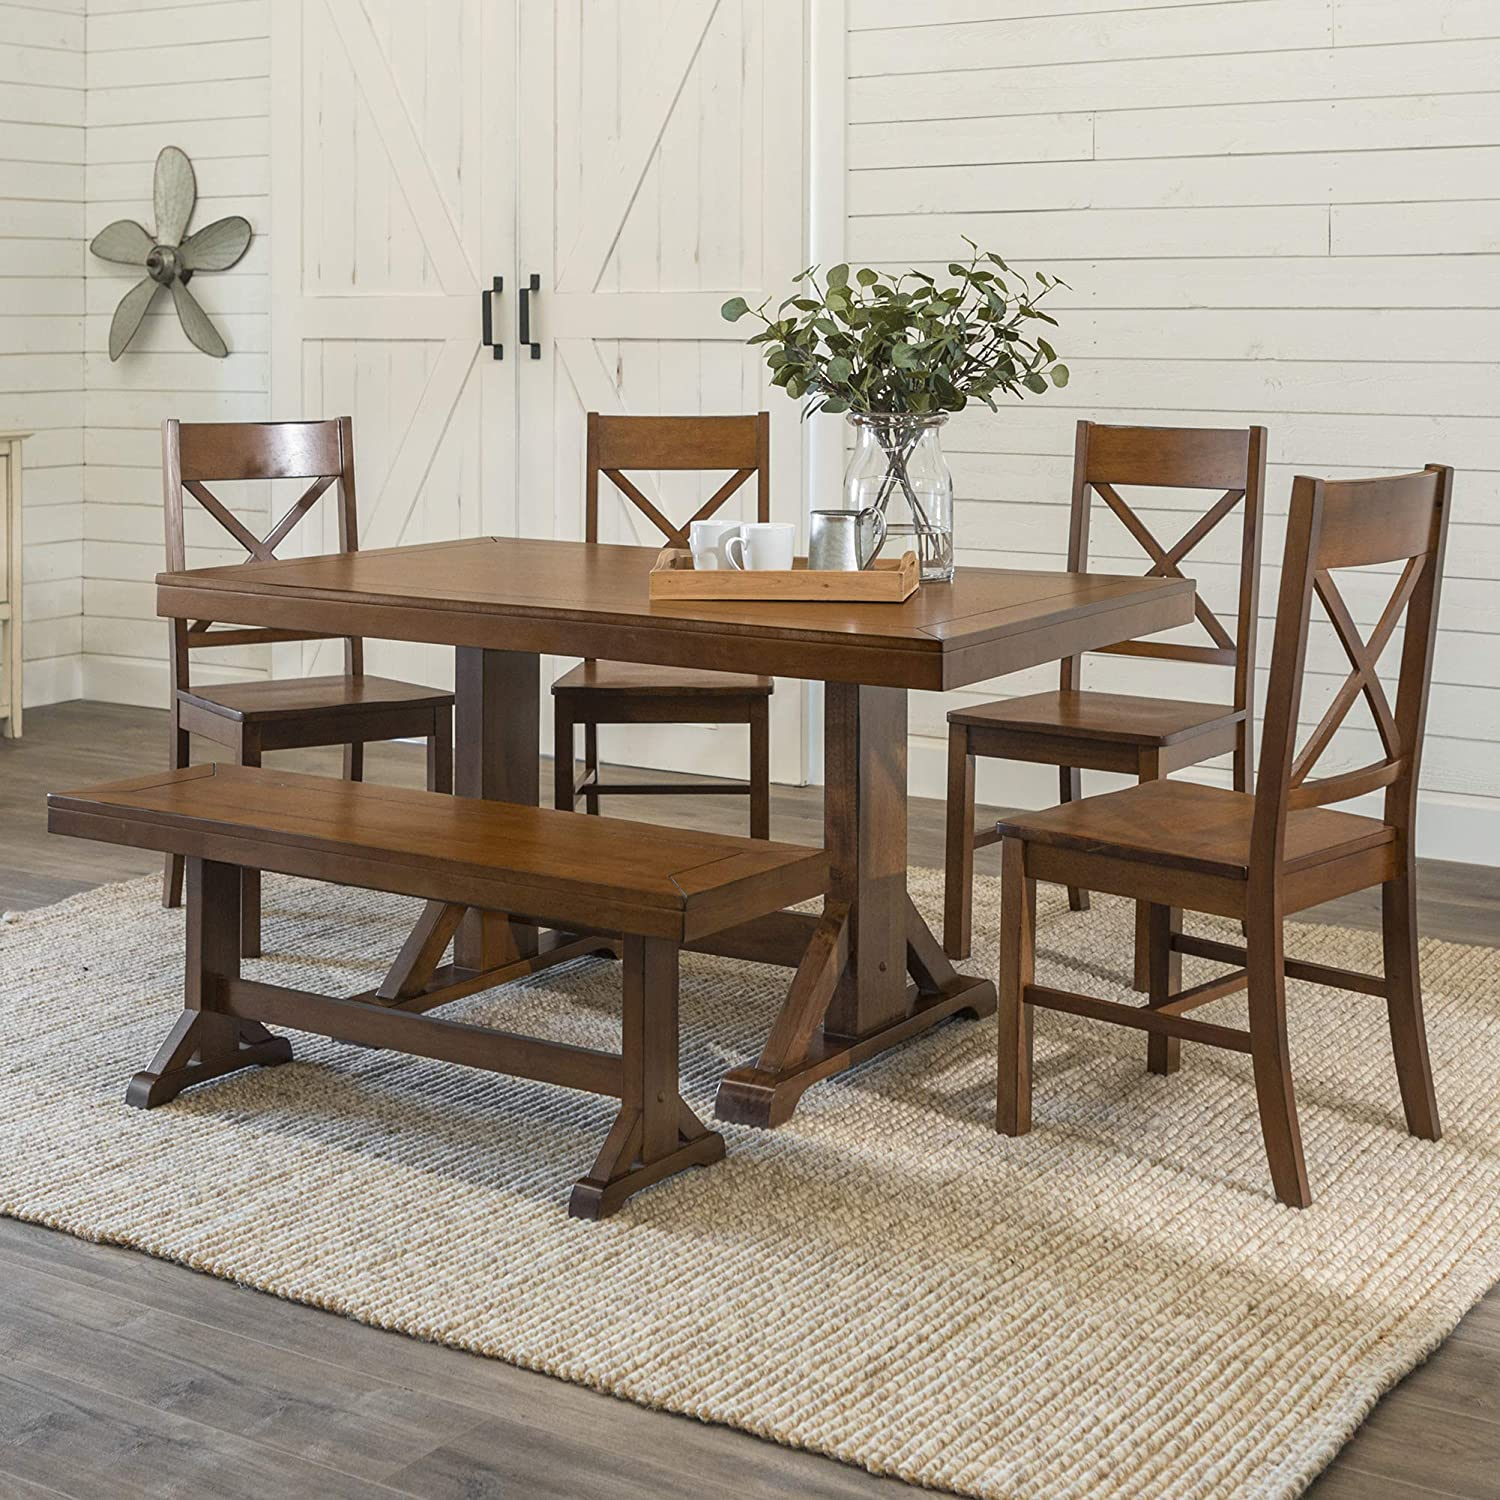 Astounding We Furniture Rustic Modern Farmhouse Wood Rectangle Dining Room Table Set Kitchen Chairs Bench 6 Piece Antique Brown Machost Co Dining Chair Design Ideas Machostcouk